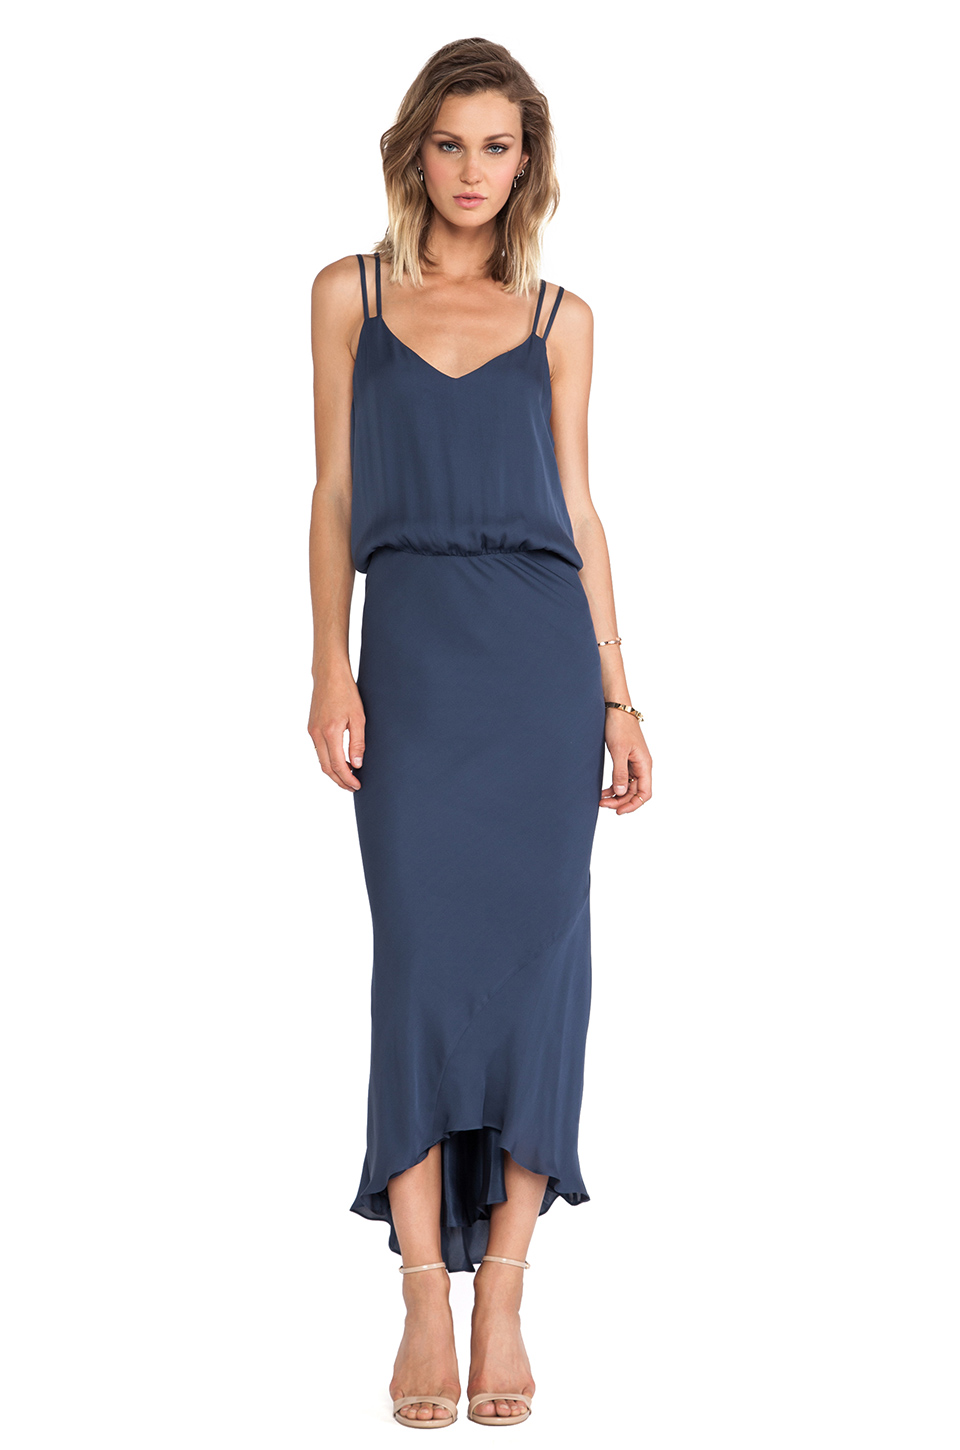 Mason by Michelle Mason Double Strap Bias Dress in Slate | REVOLVE